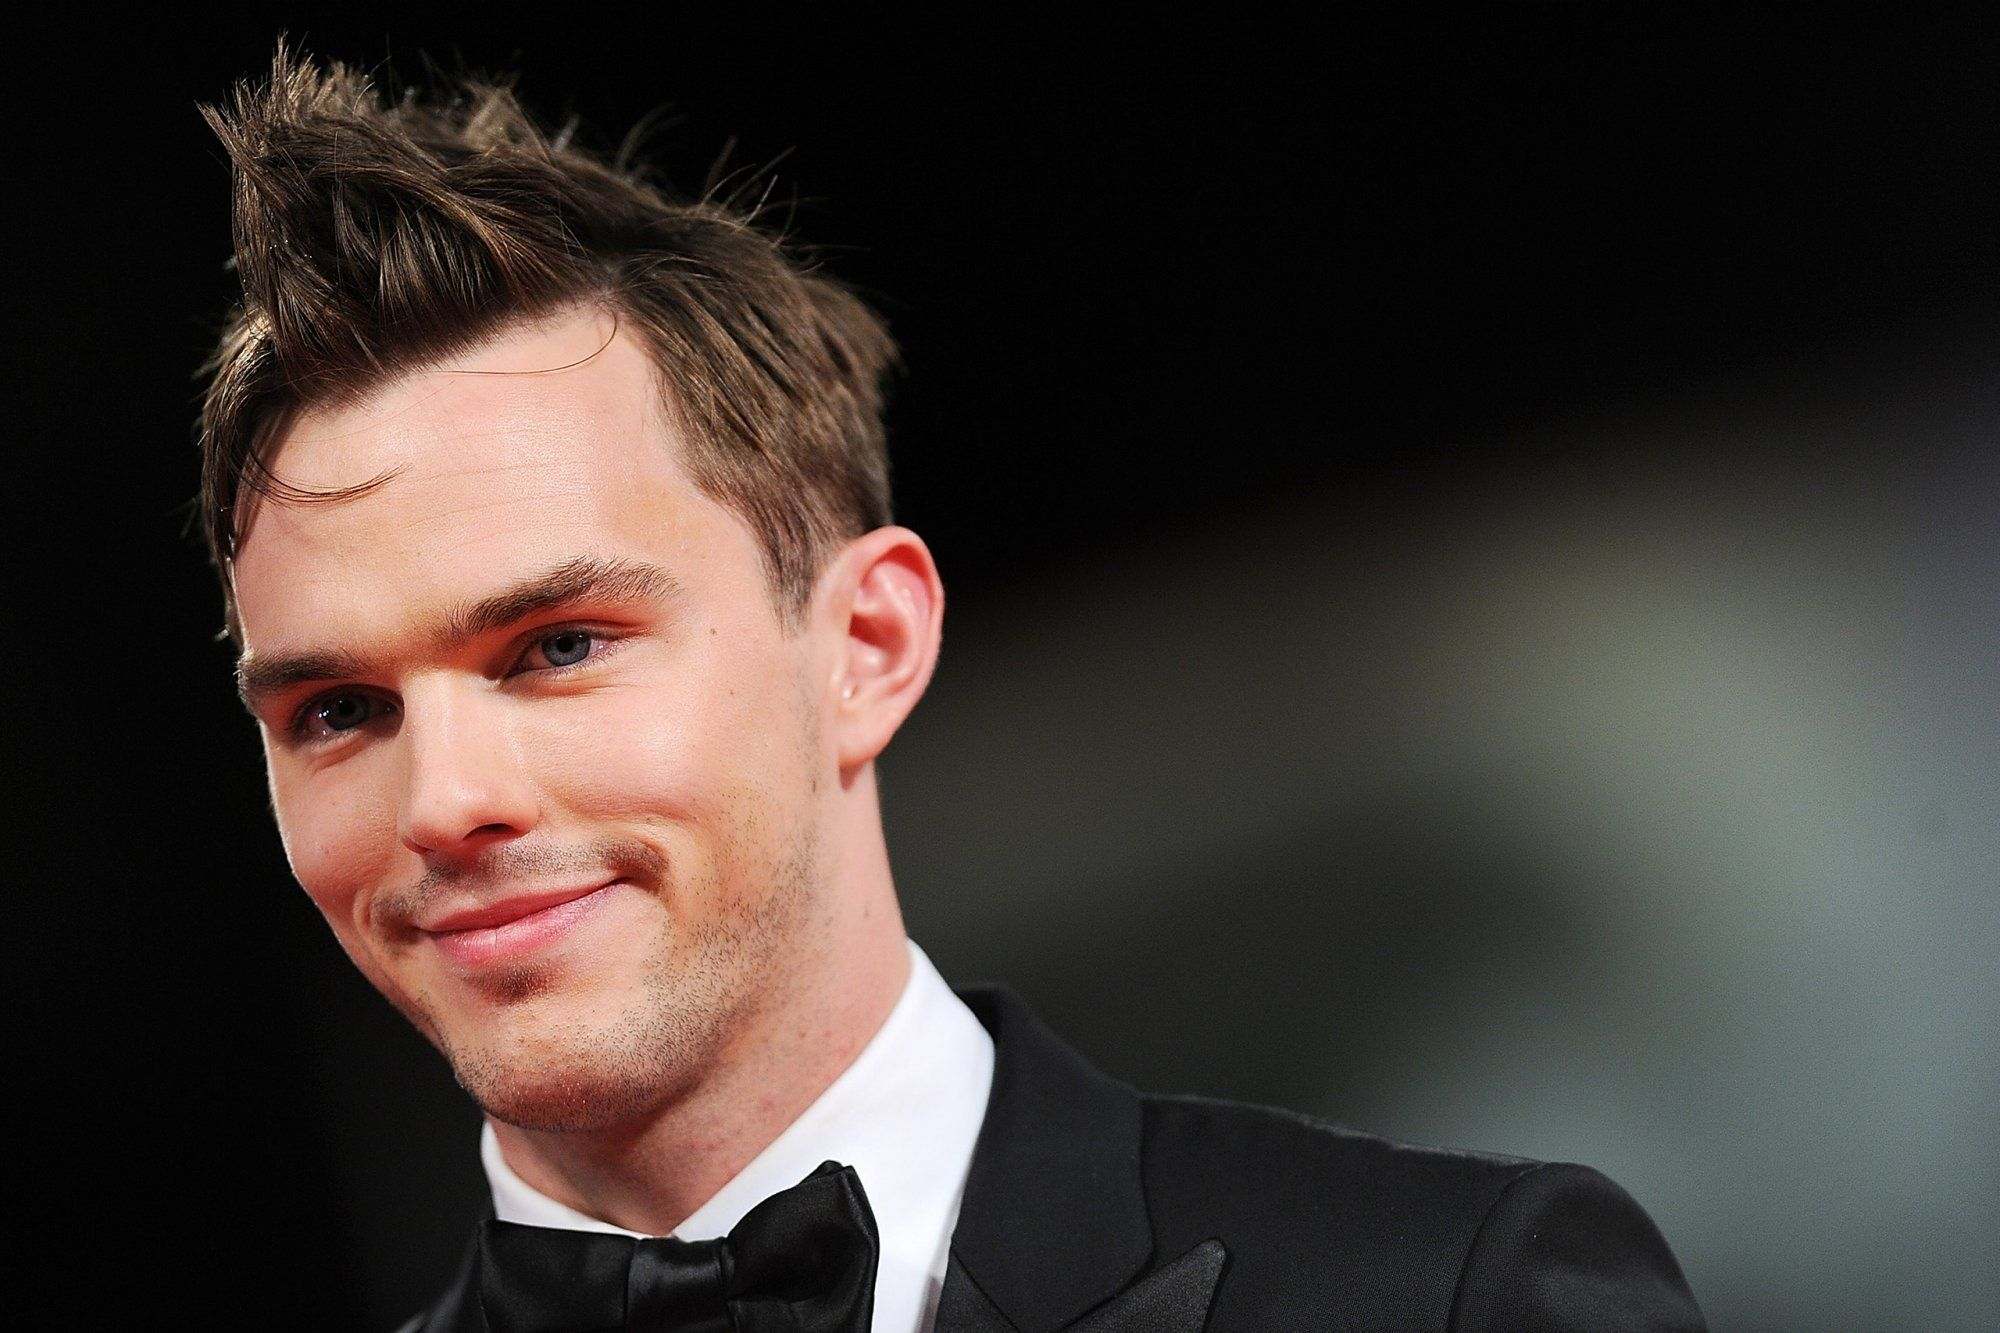 Boy hairstyle status nicholas houltus first love  nicholas hoult and films